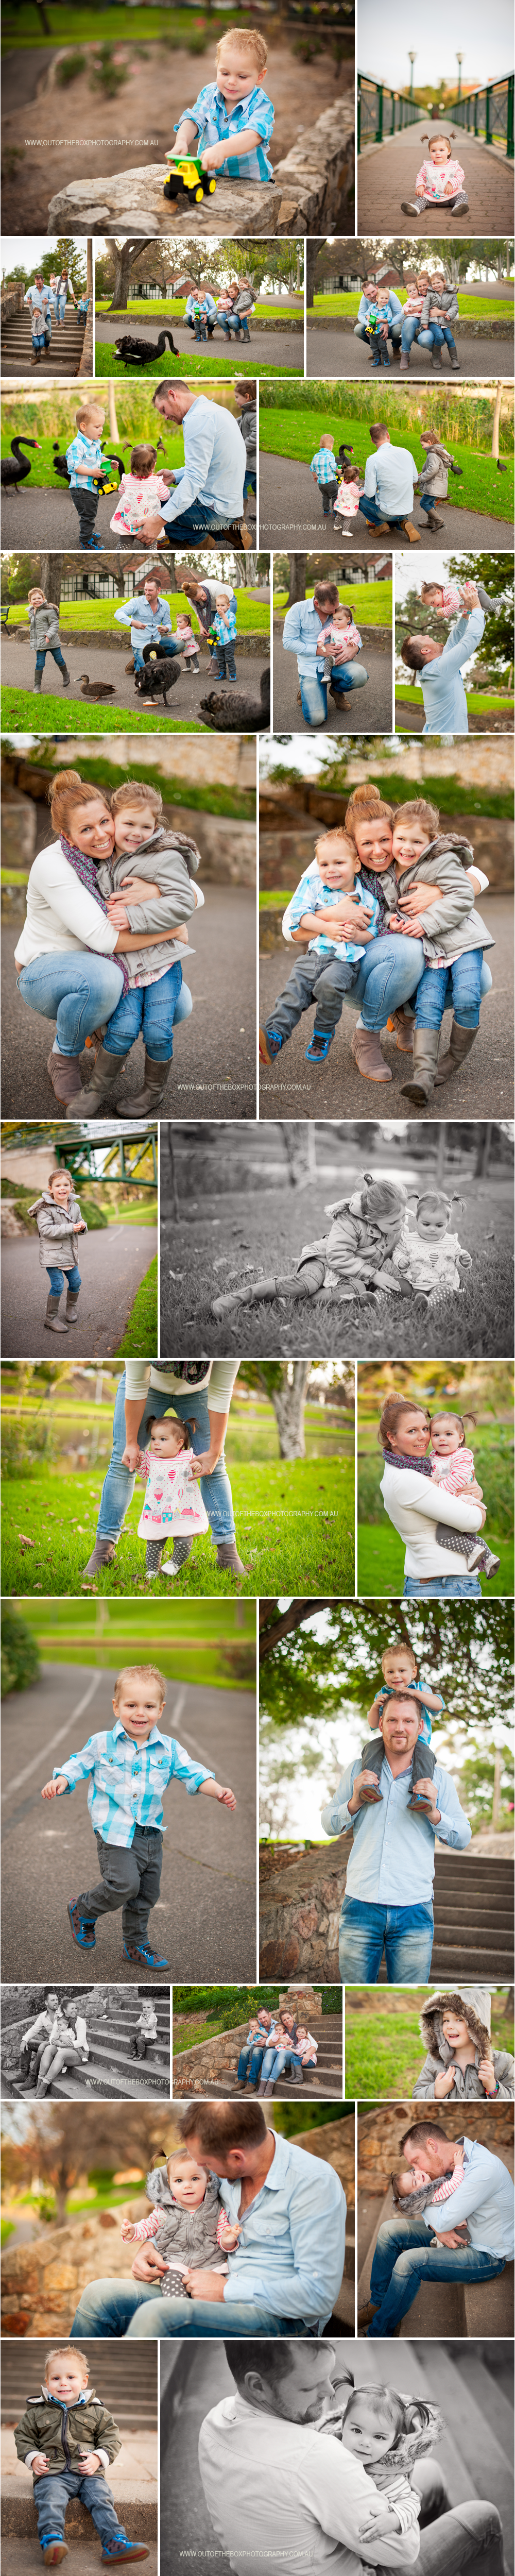 Adelaide-Family-Photographer